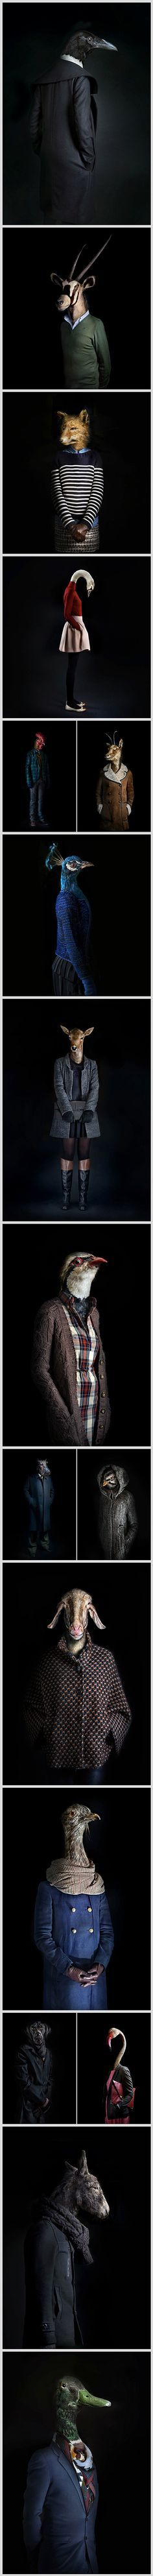 """Madrid-based advertising and industrial photographer Miguel Vallinas presents his whimsical photo series, titled """"Second Skins"""", where various animals take up a role that's completely new to them. Dressed in fashionable clothes, each of them poses as a typical human model would, and it appears the their outfits match their personalities as a true second skin."""